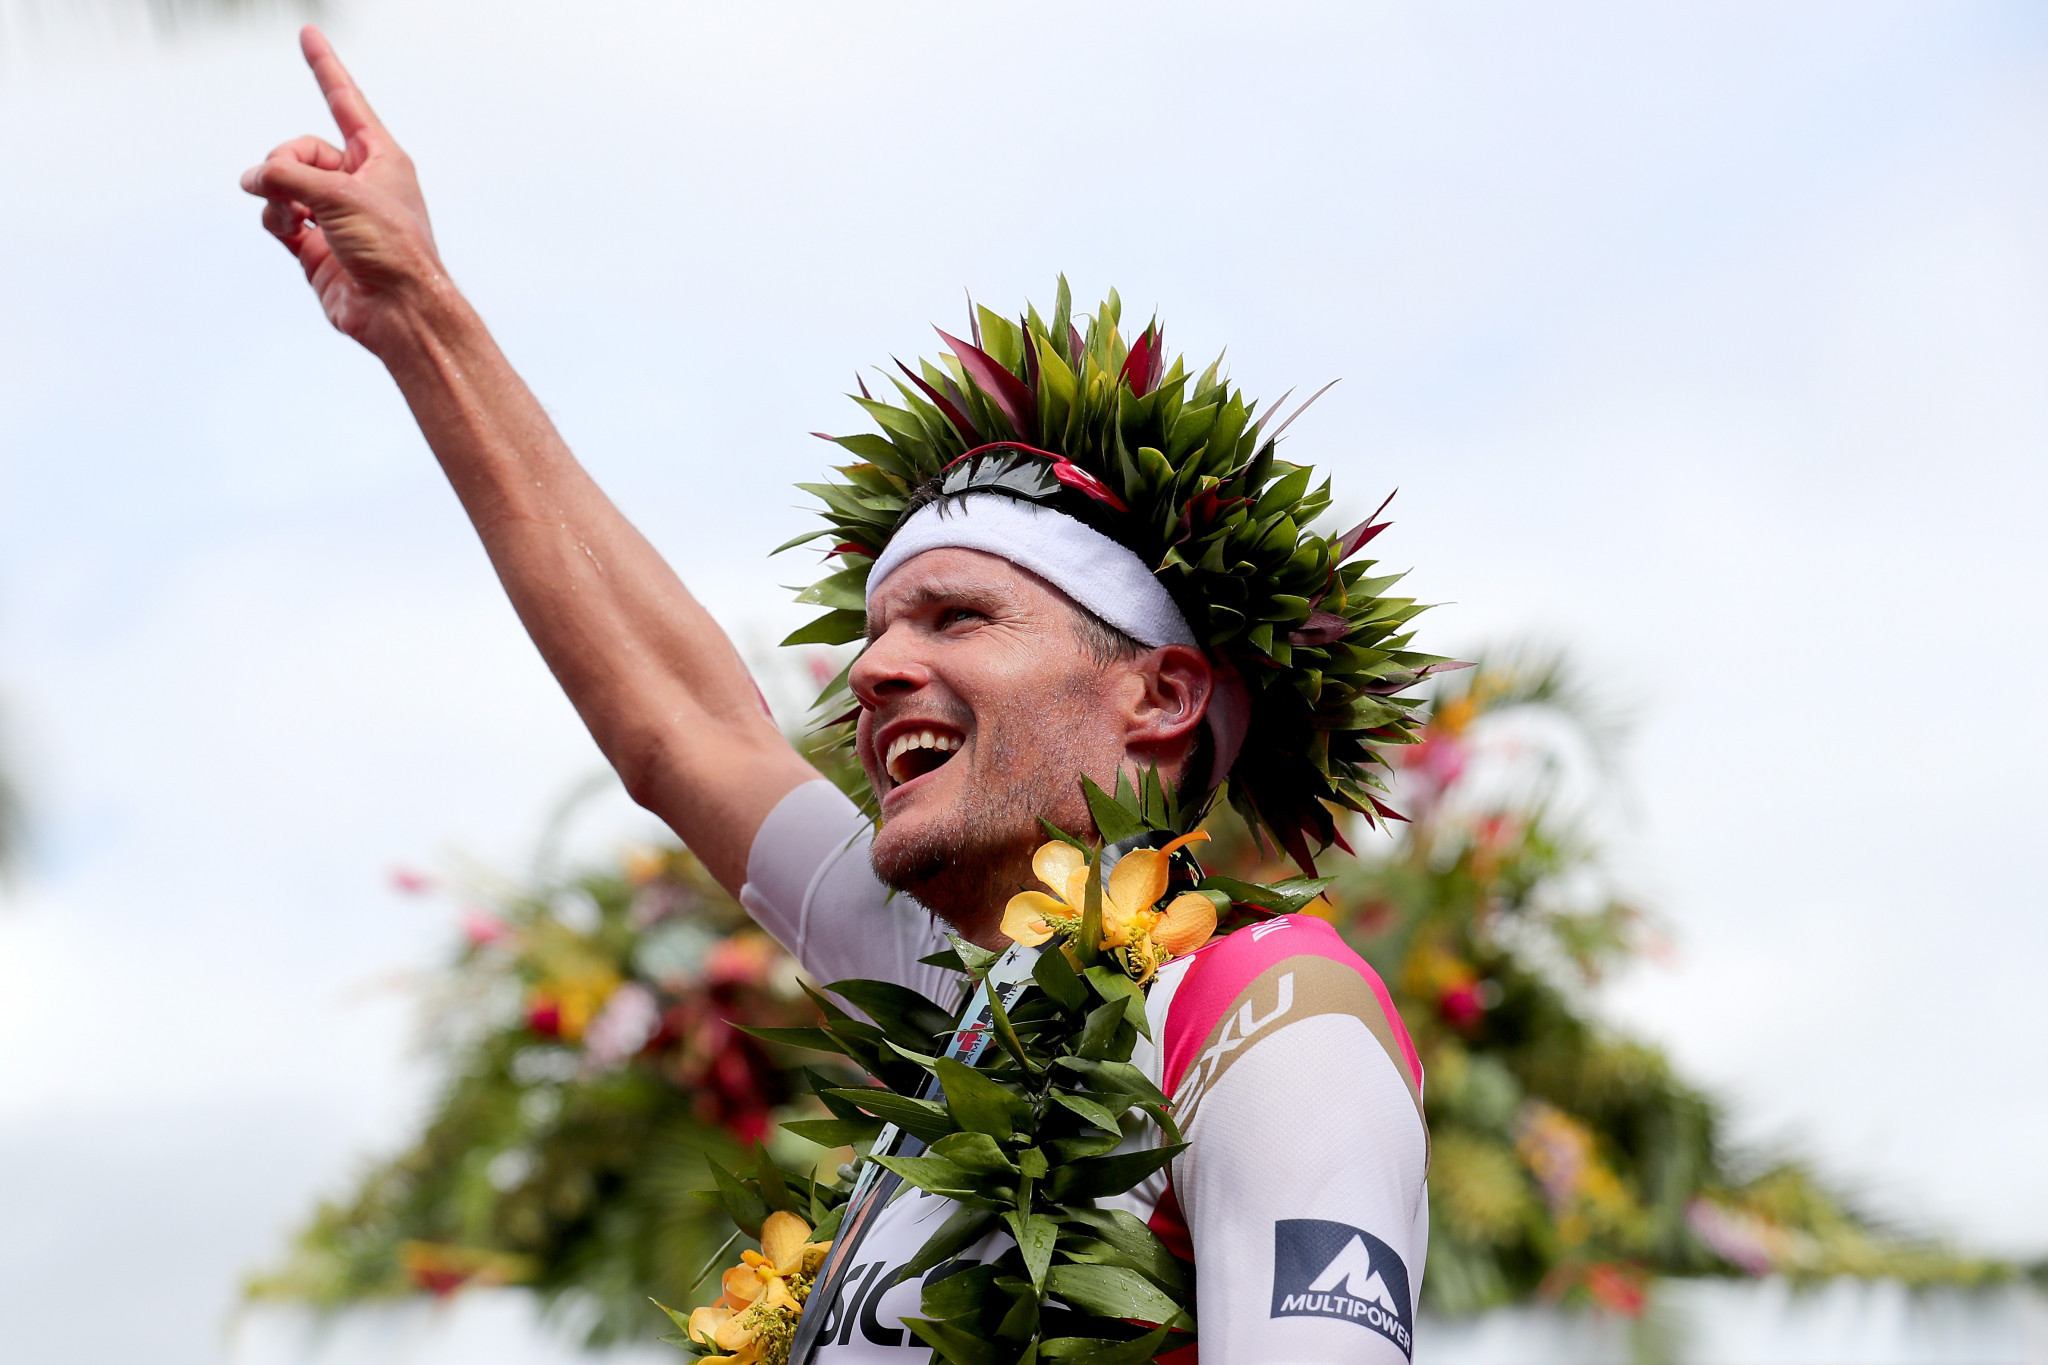 Defending champions back for Ironman World Championship in Hawaii